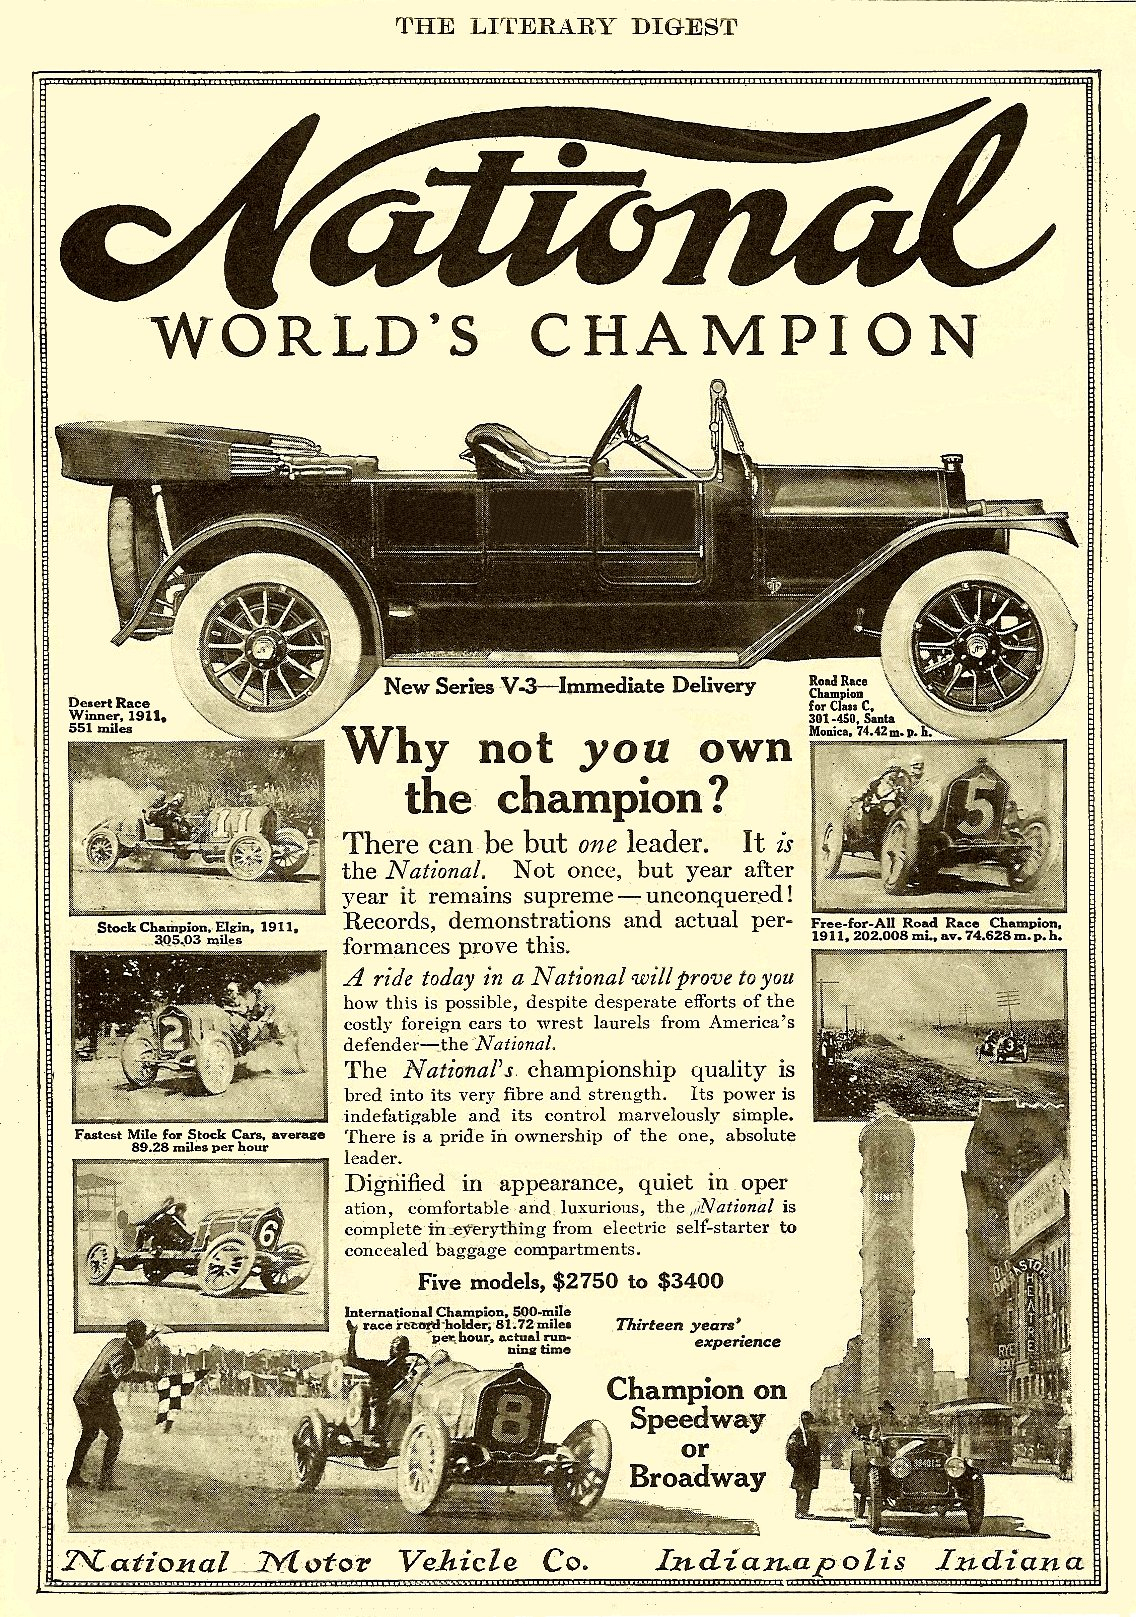 1913 NATIONAL World's Champion THE LITERARY DIGEST 7.75″x10.75″